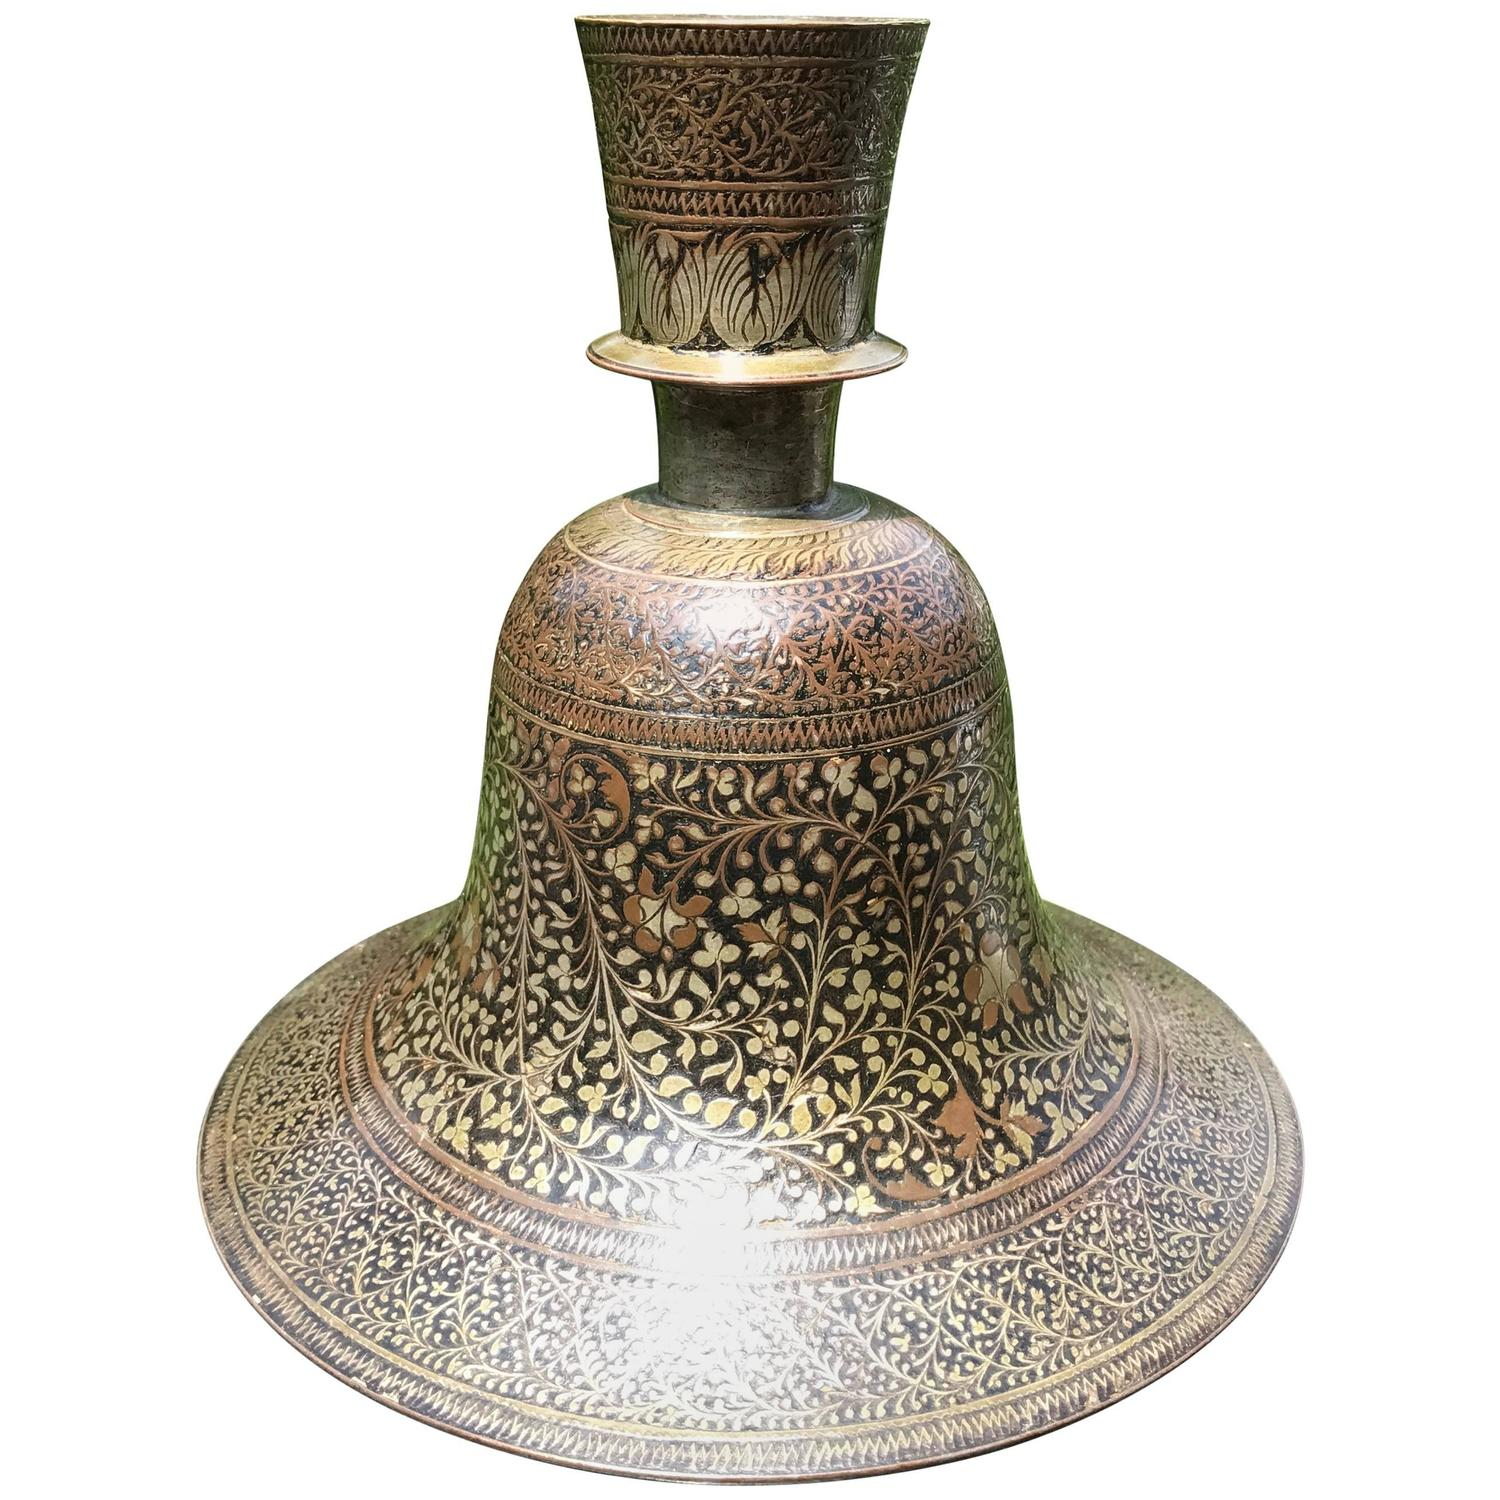 Indian table lamps 15 for sale at 1stdibs indian mughal lacquered and silver inlaid bidri hookah base geotapseo Gallery